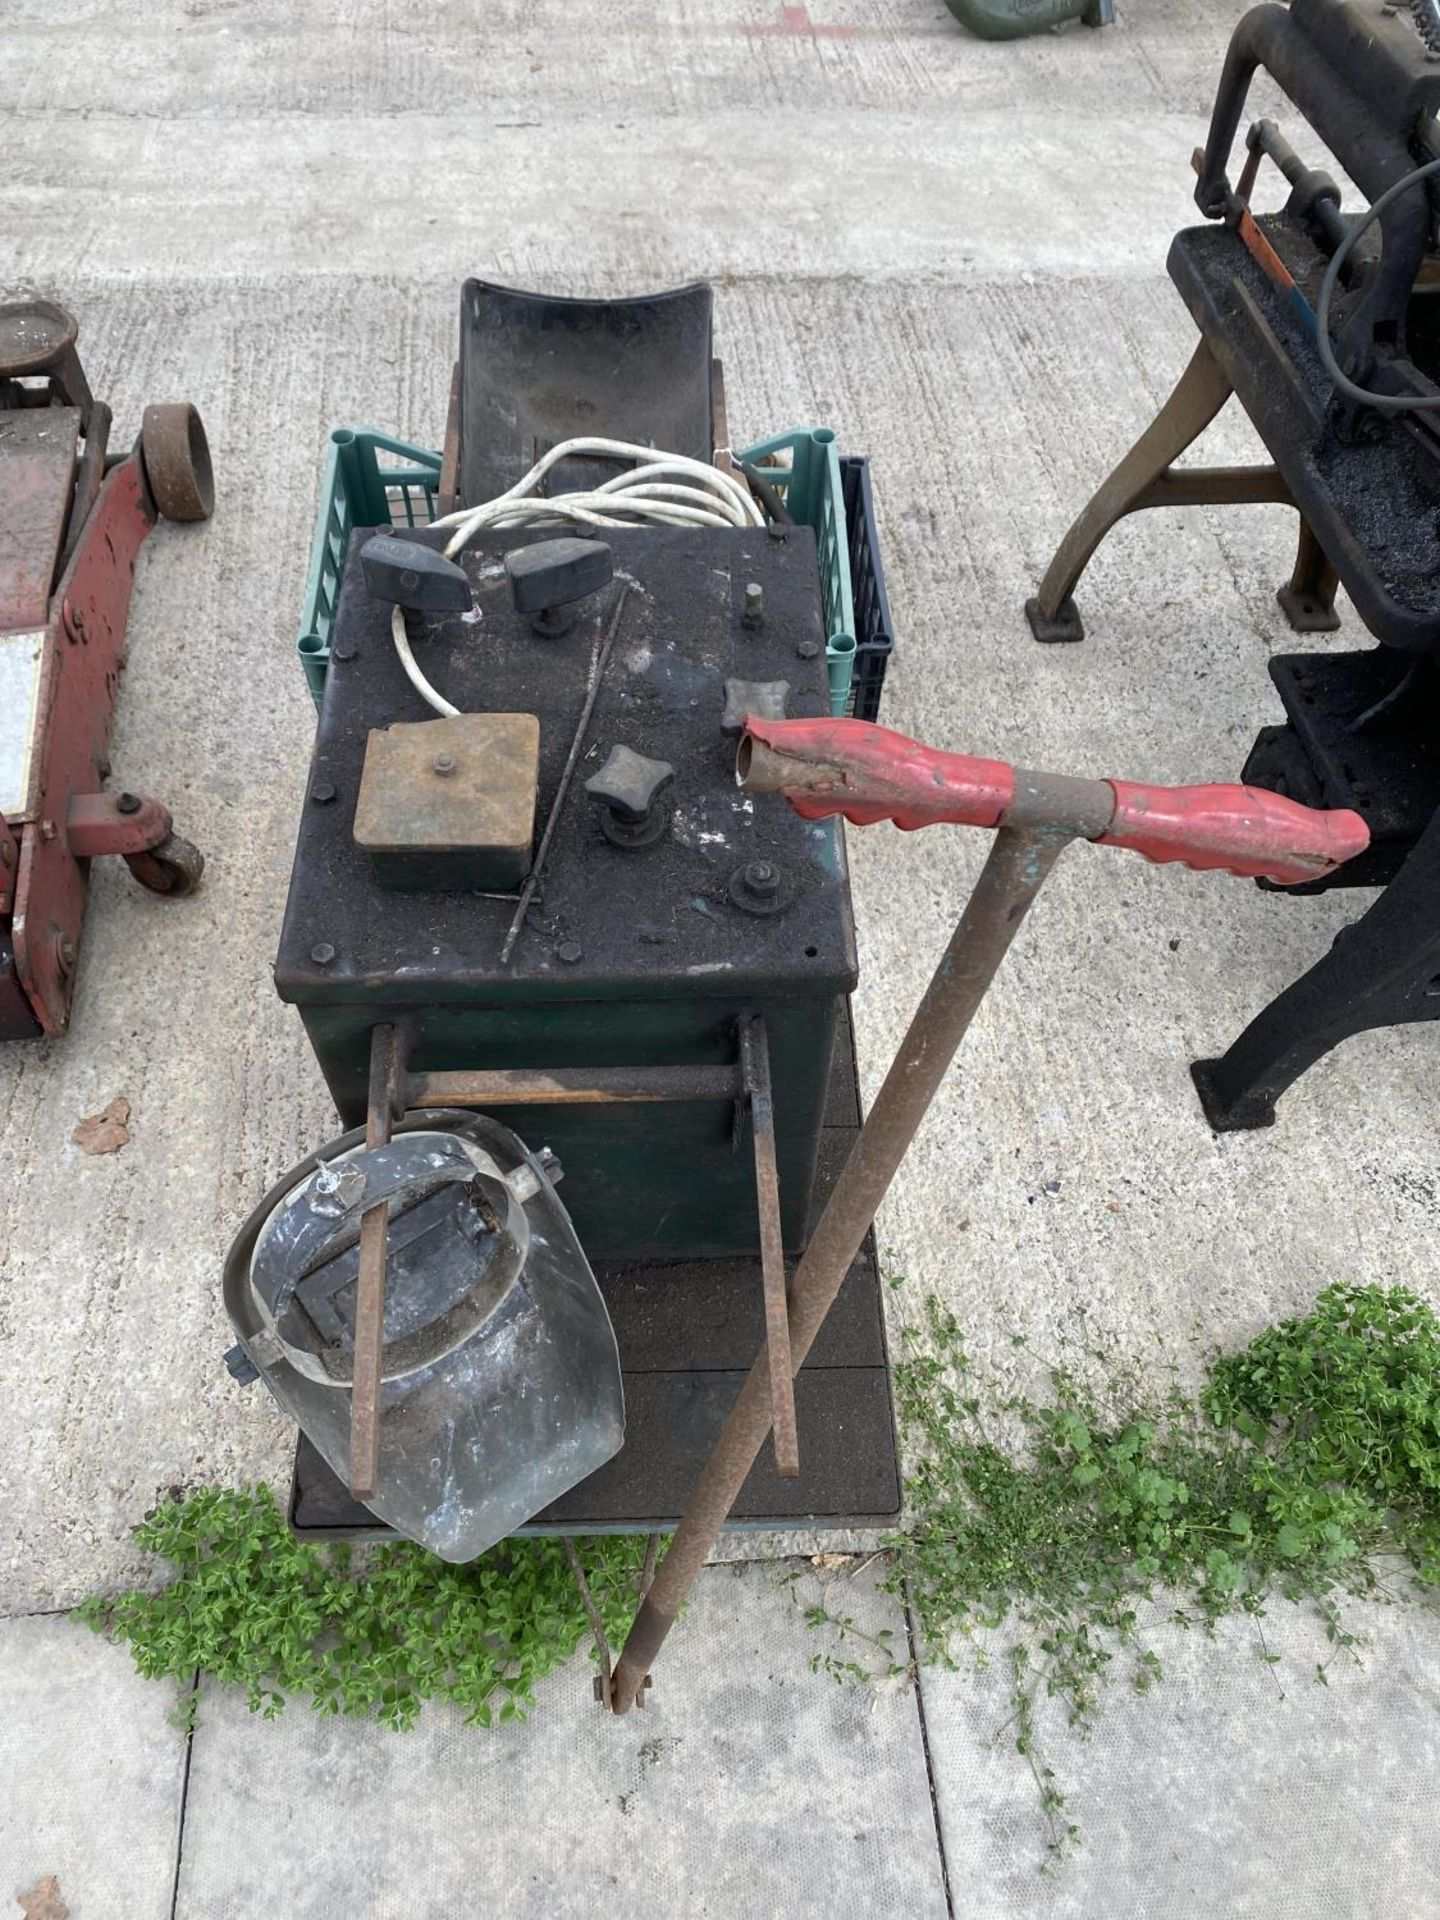 A MIG WELDER ON A TROLLEY BASE TO INCLUDE WELDER ACCESSORIES WORKING WHEN LAST USED+ VAT - Image 5 of 5